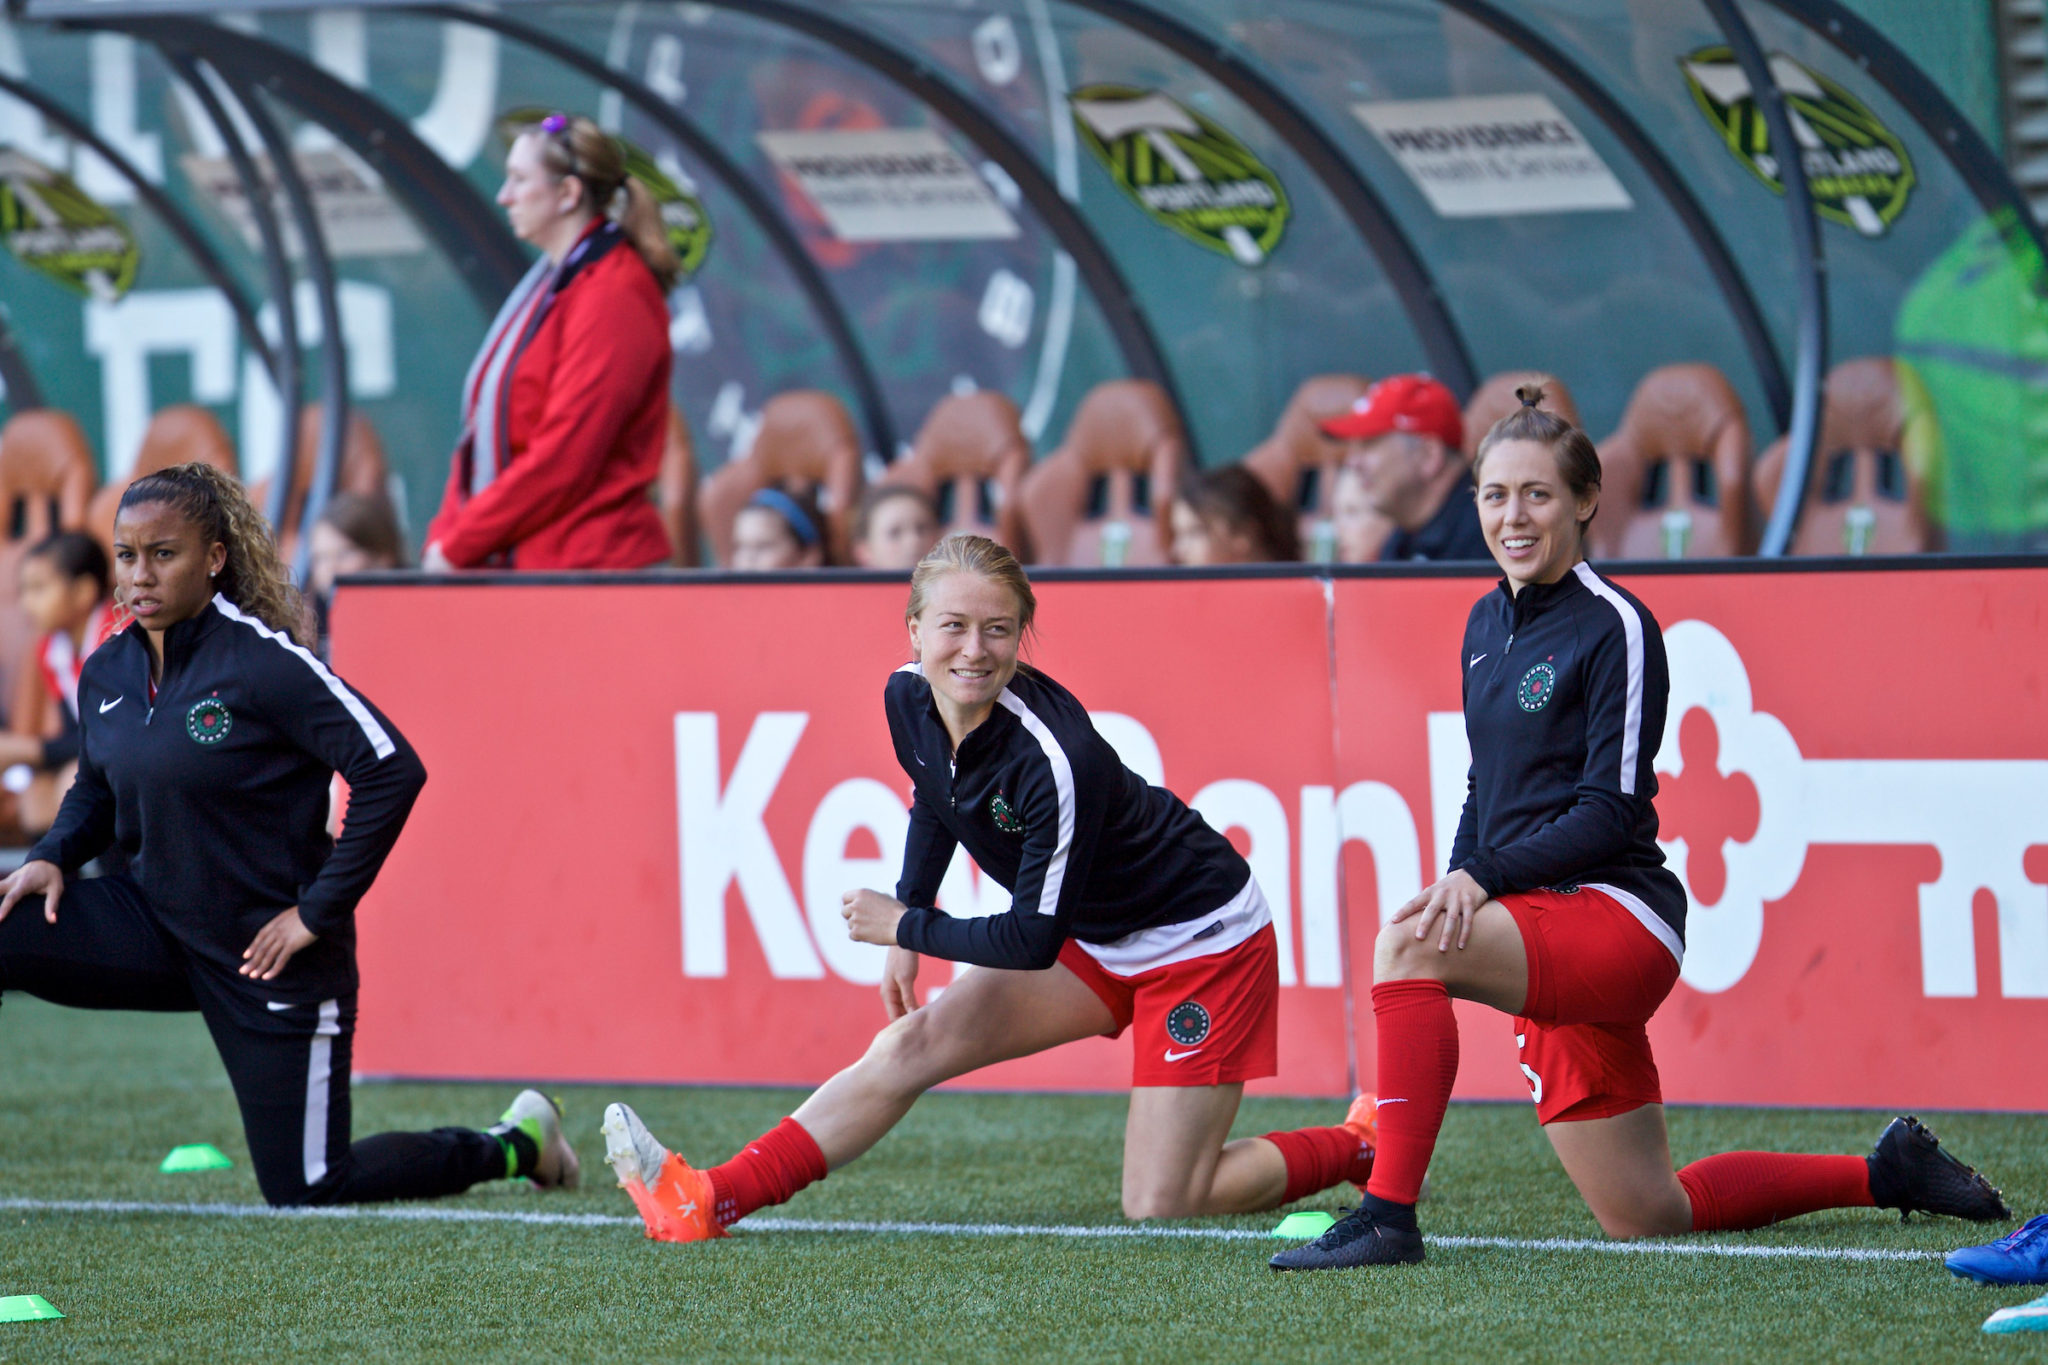 The 23-year old has 12 senior team appearances with the USWNT and was named an alternate to Jill Ellis' Rio Olympics roster in the summer of 2016. (Credit: Thorns FC and Craig Mitchelldyer)